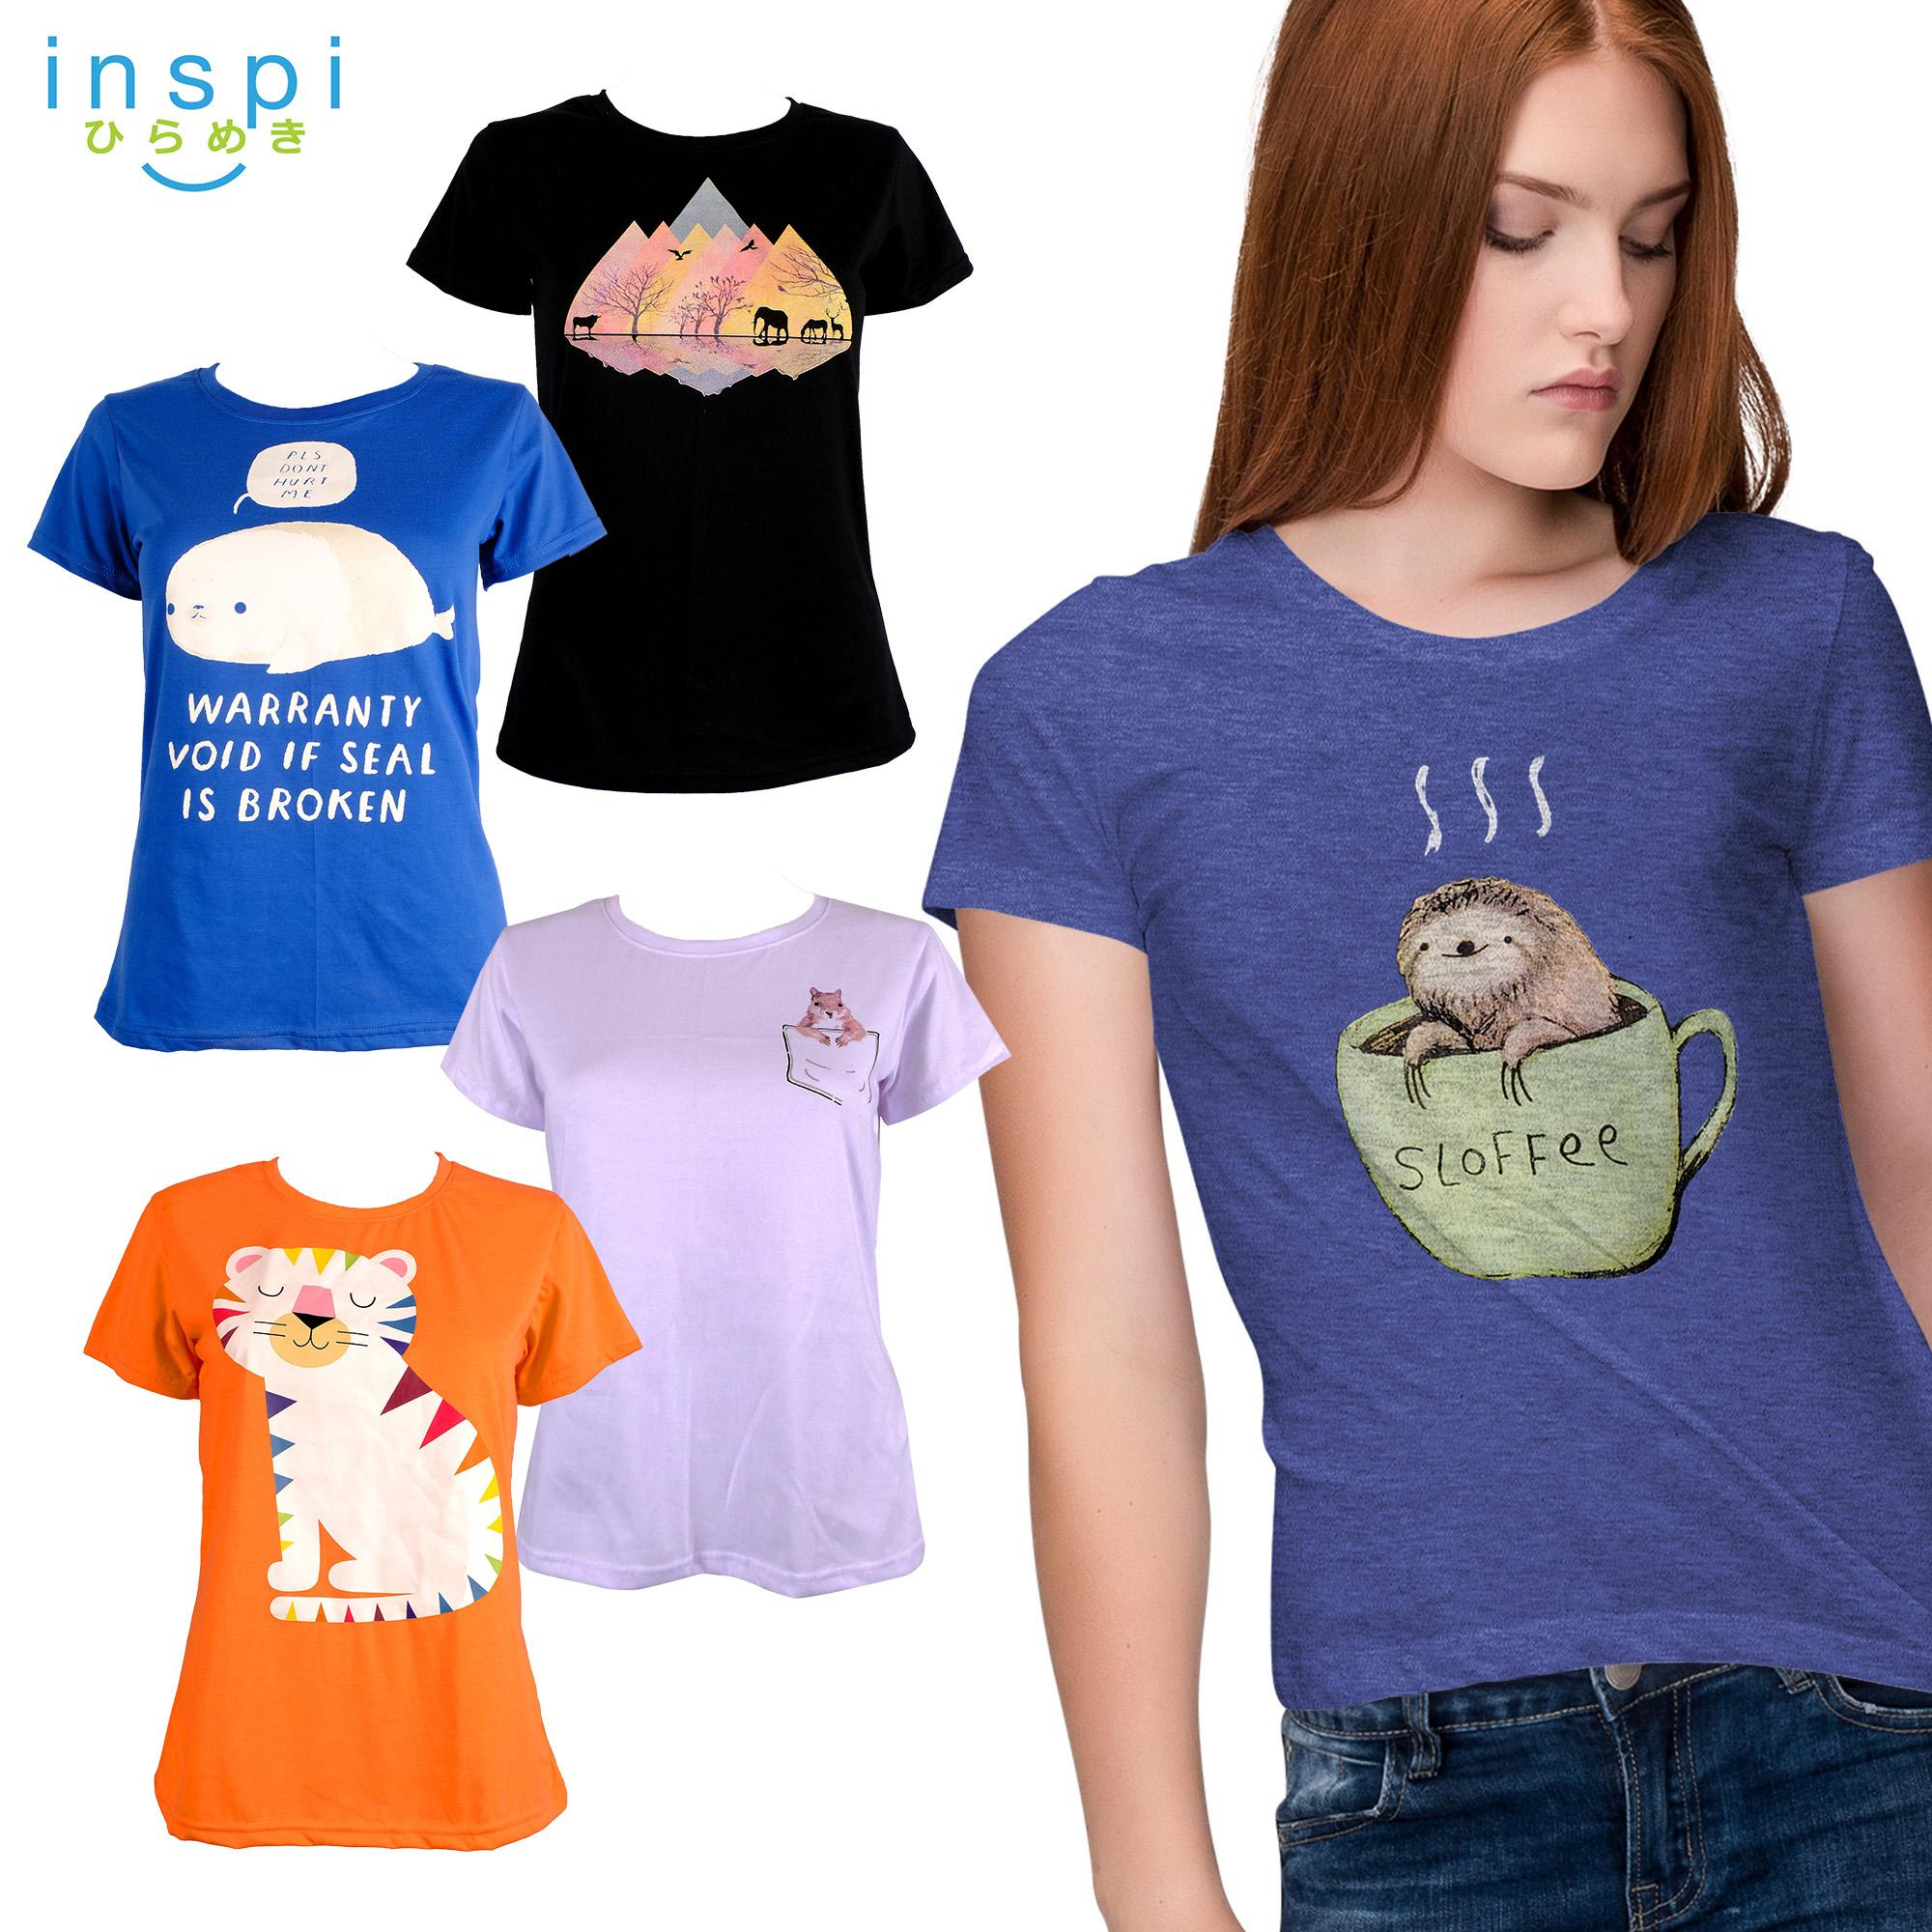 5d29ed41f20b INSPI Tees Ladies Pet Collection tshirt printed graphic tee Ladies t shirt  shirts women tshirts for